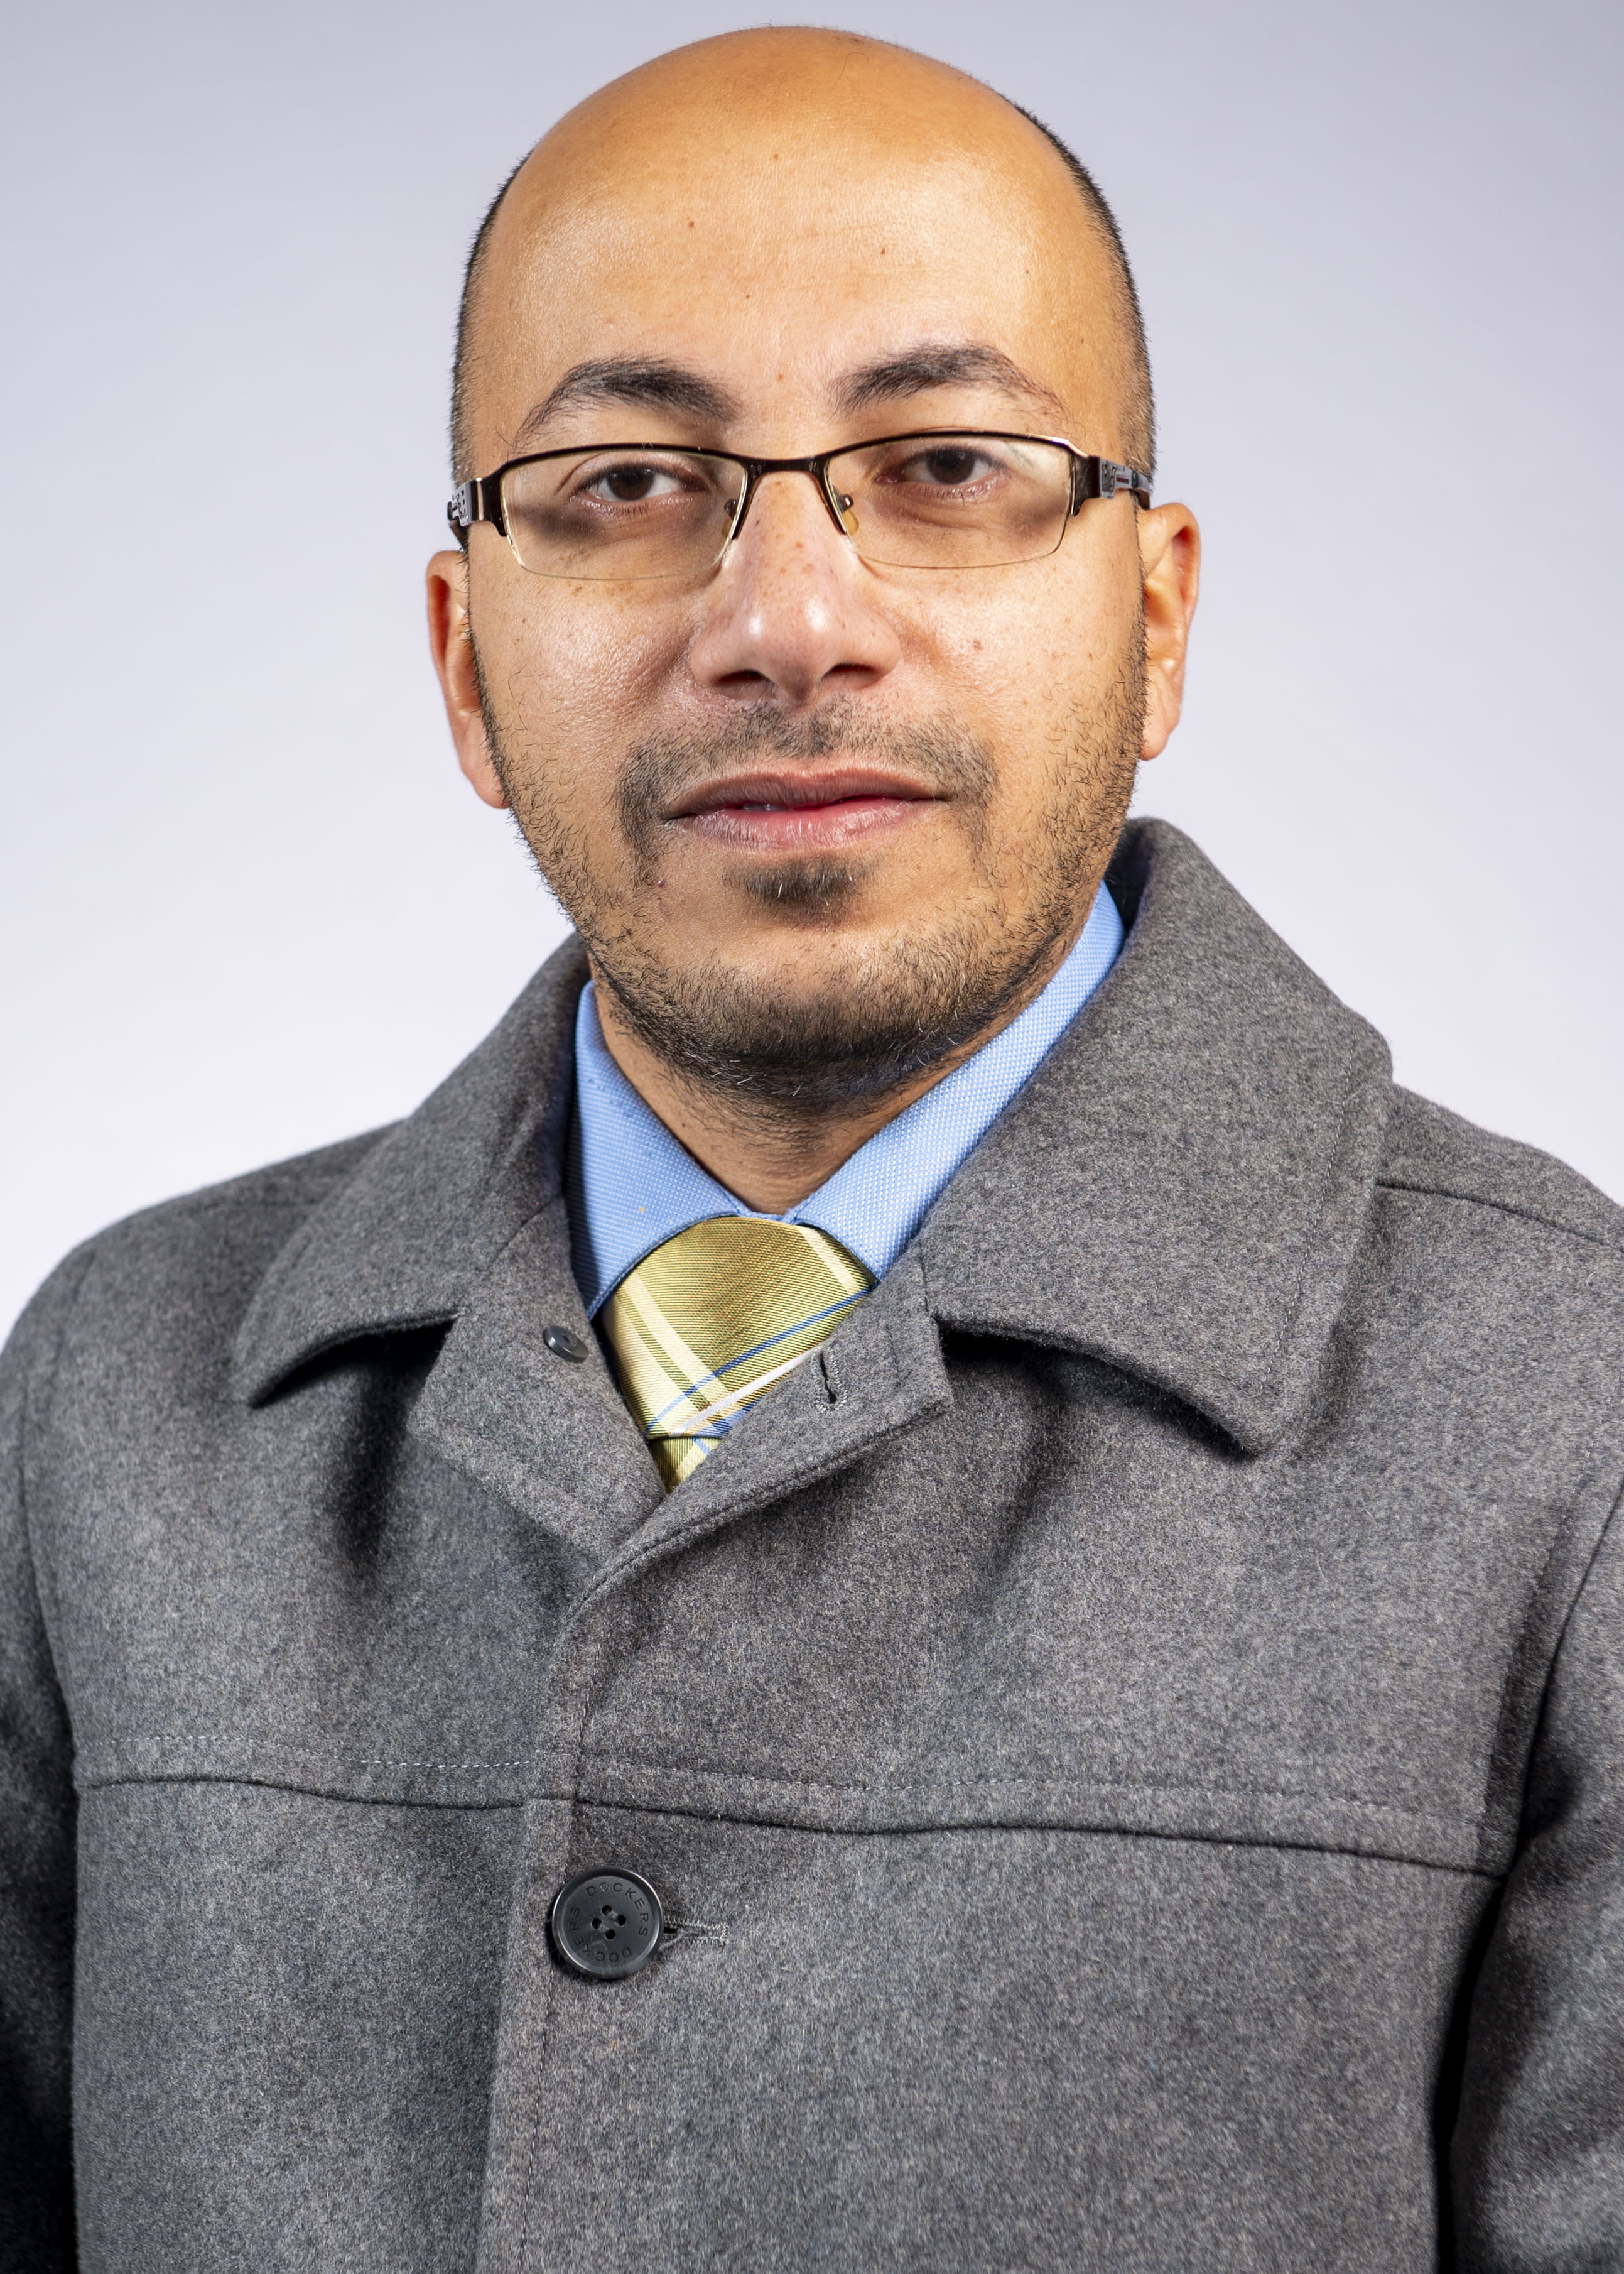 Profile photo of Dr. Ayman Elzohairy